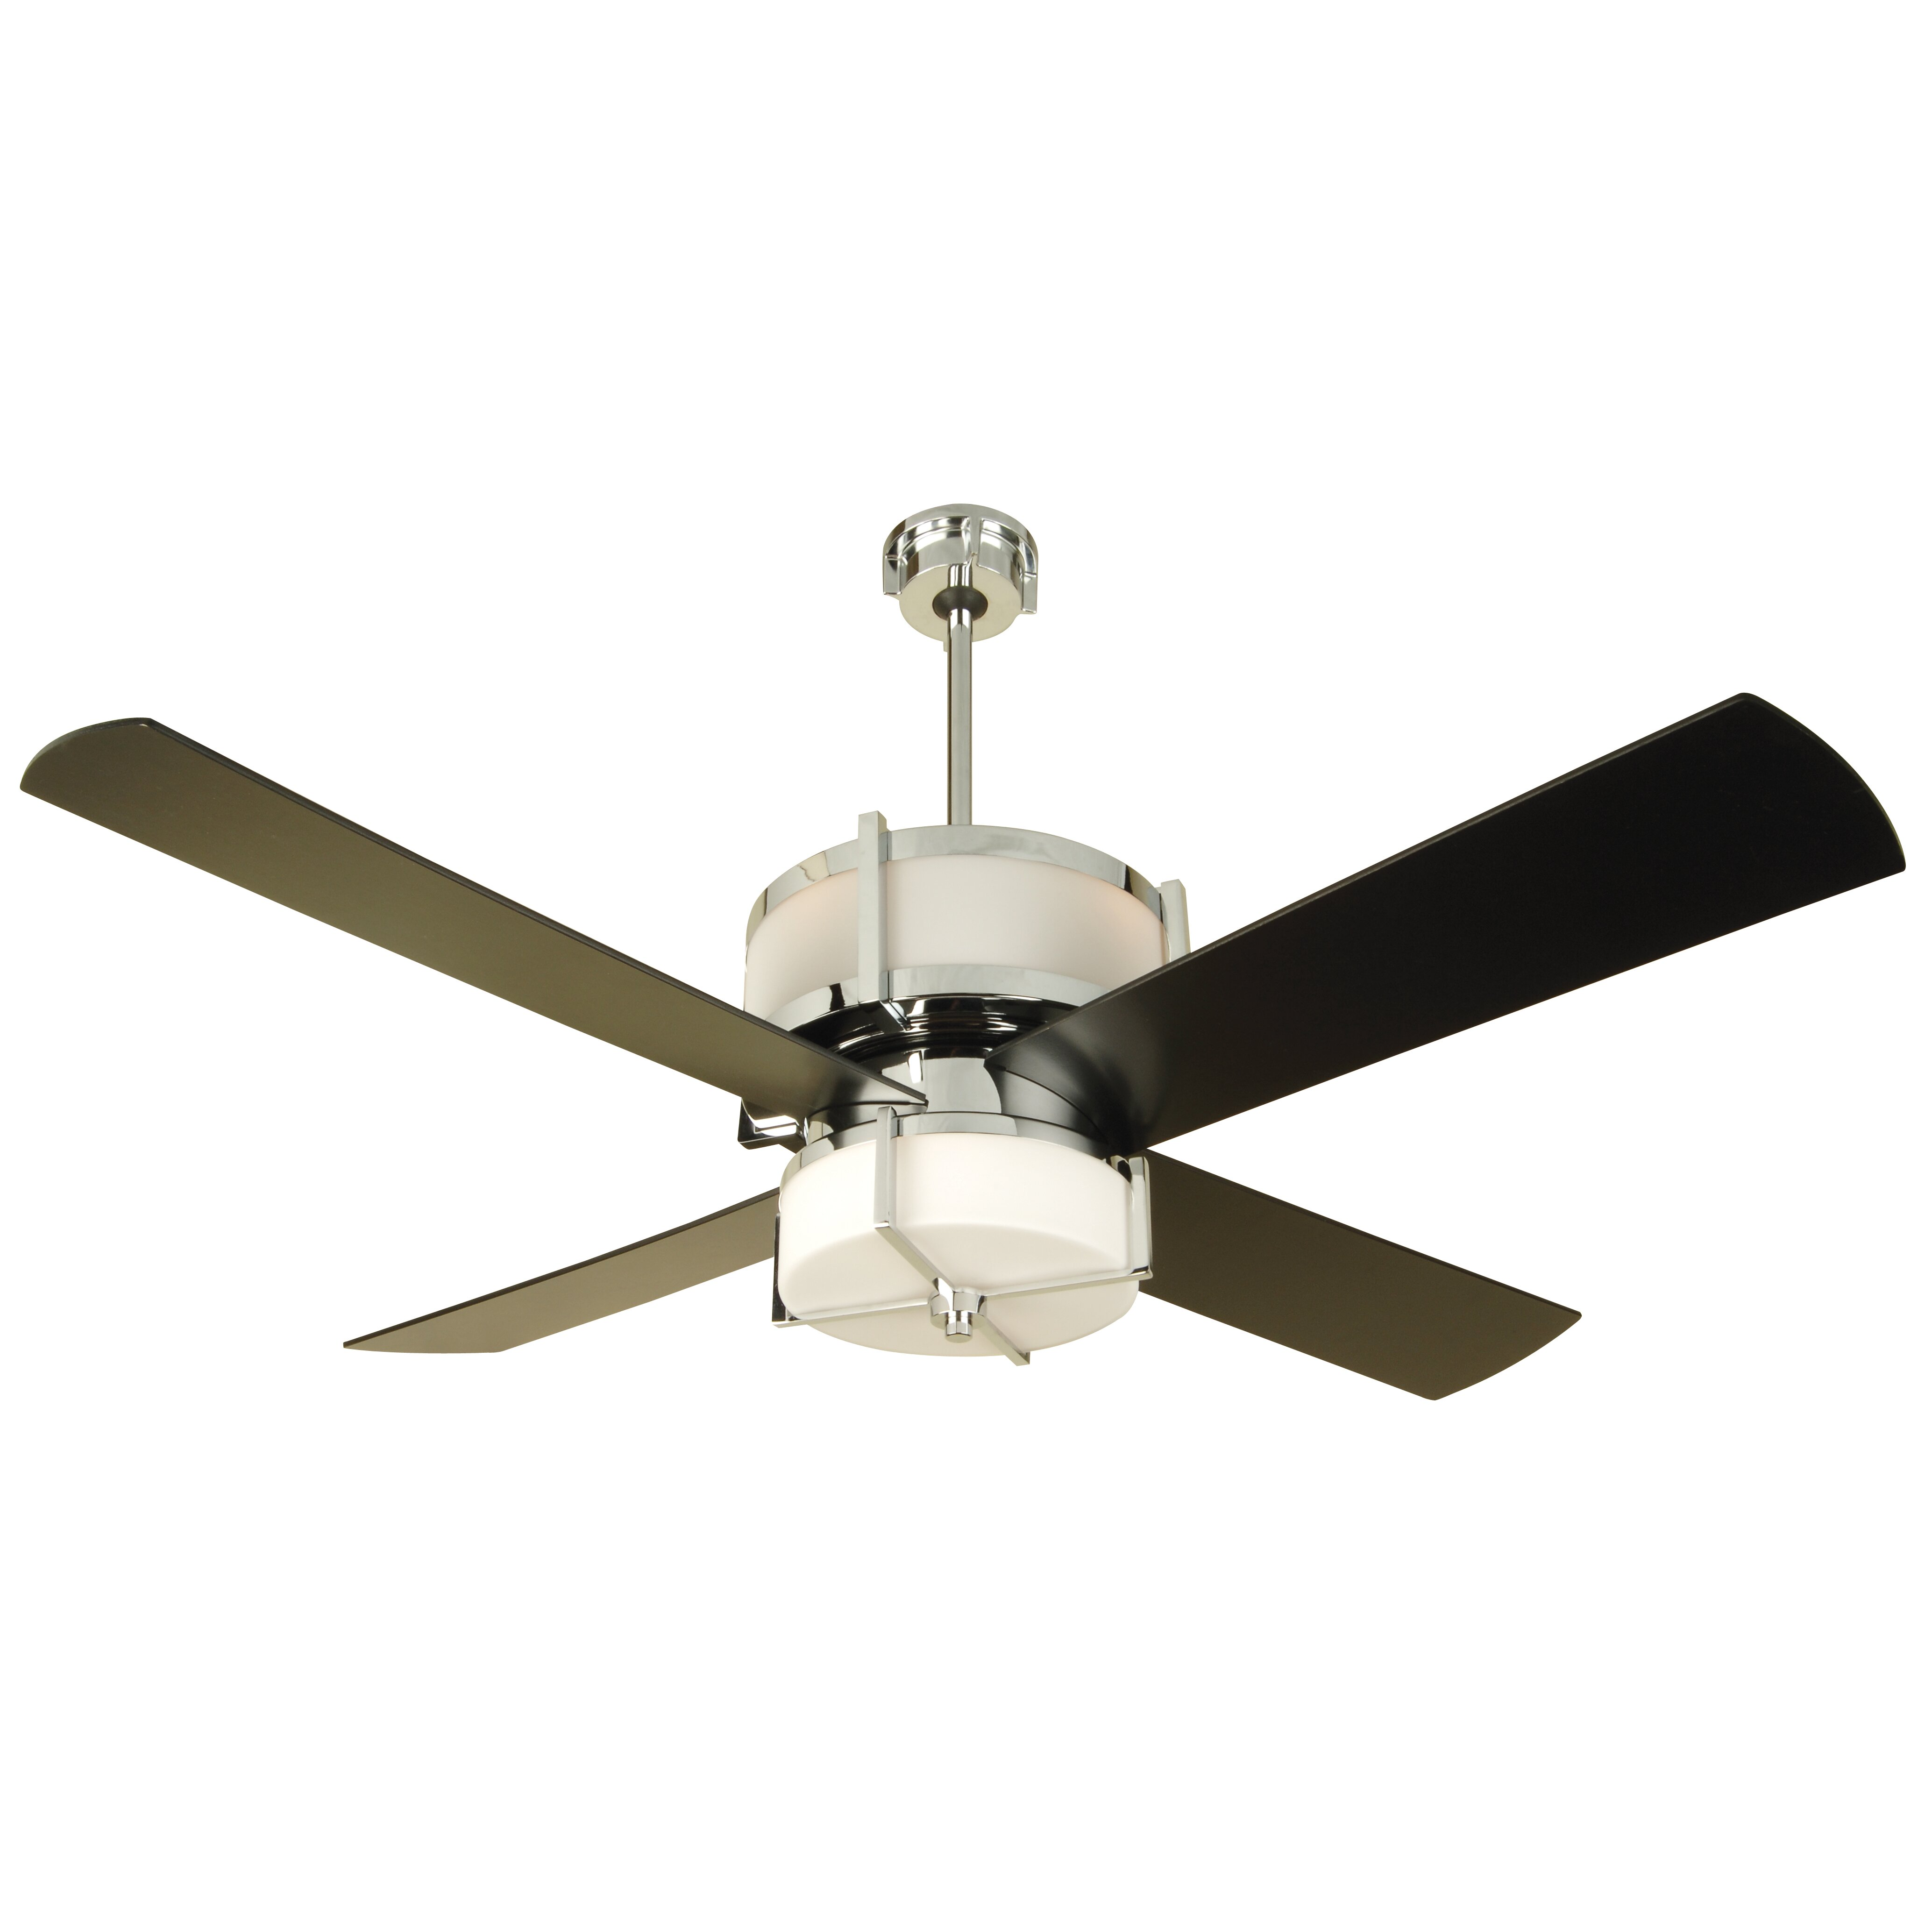 Craftmade 56 Midoro Ceiling Fan Amp Reviews